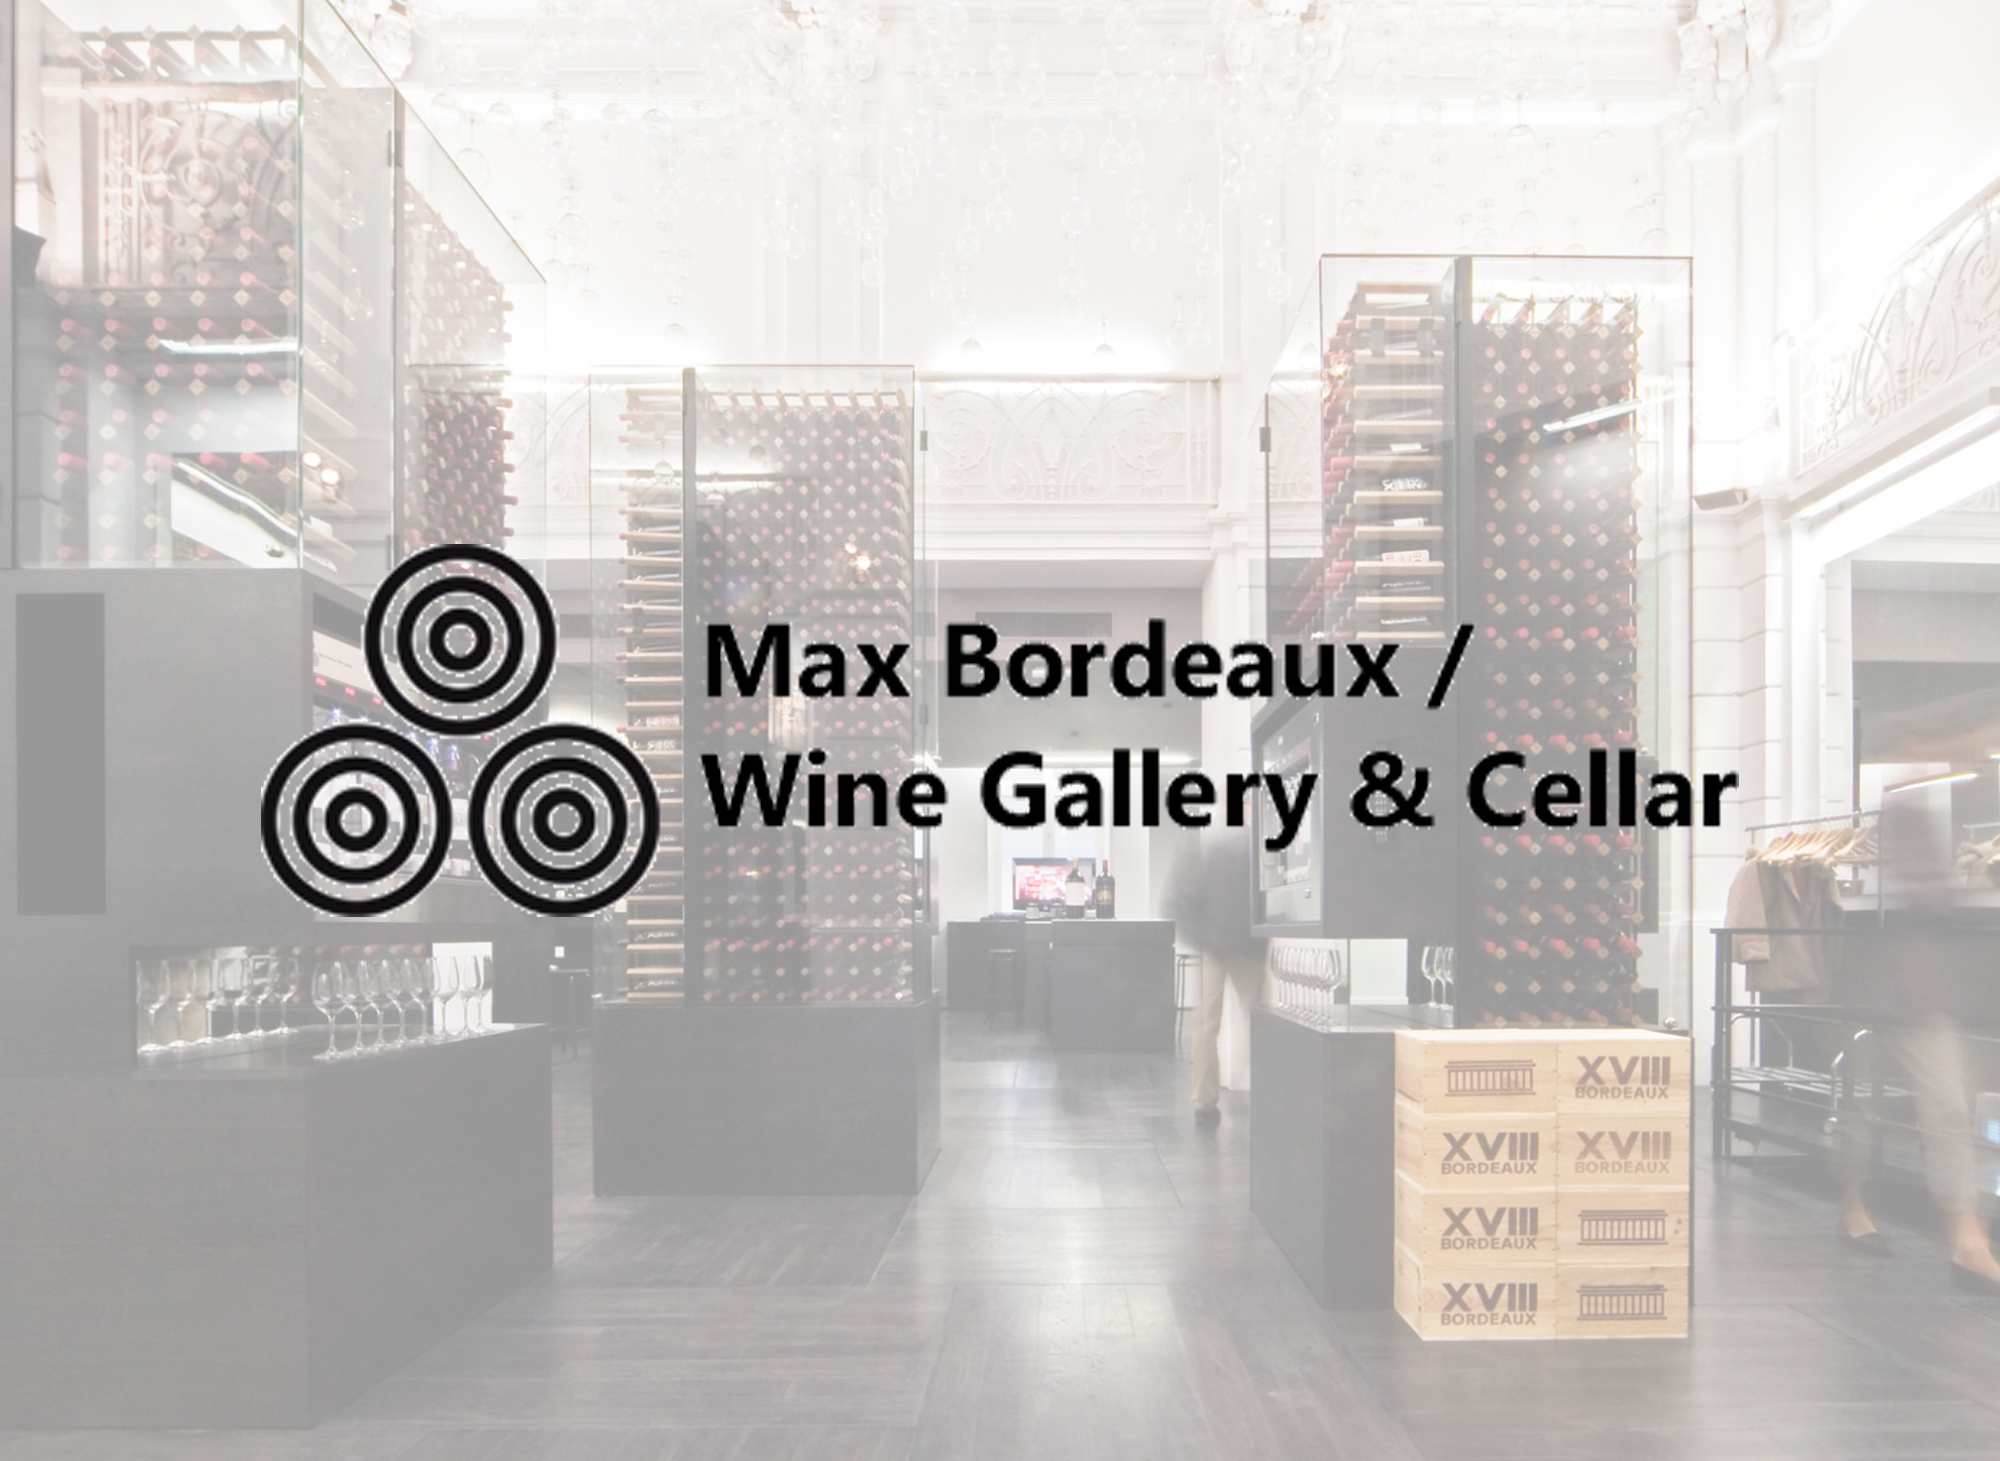 max-bordeaux-reference-services-site-marchand